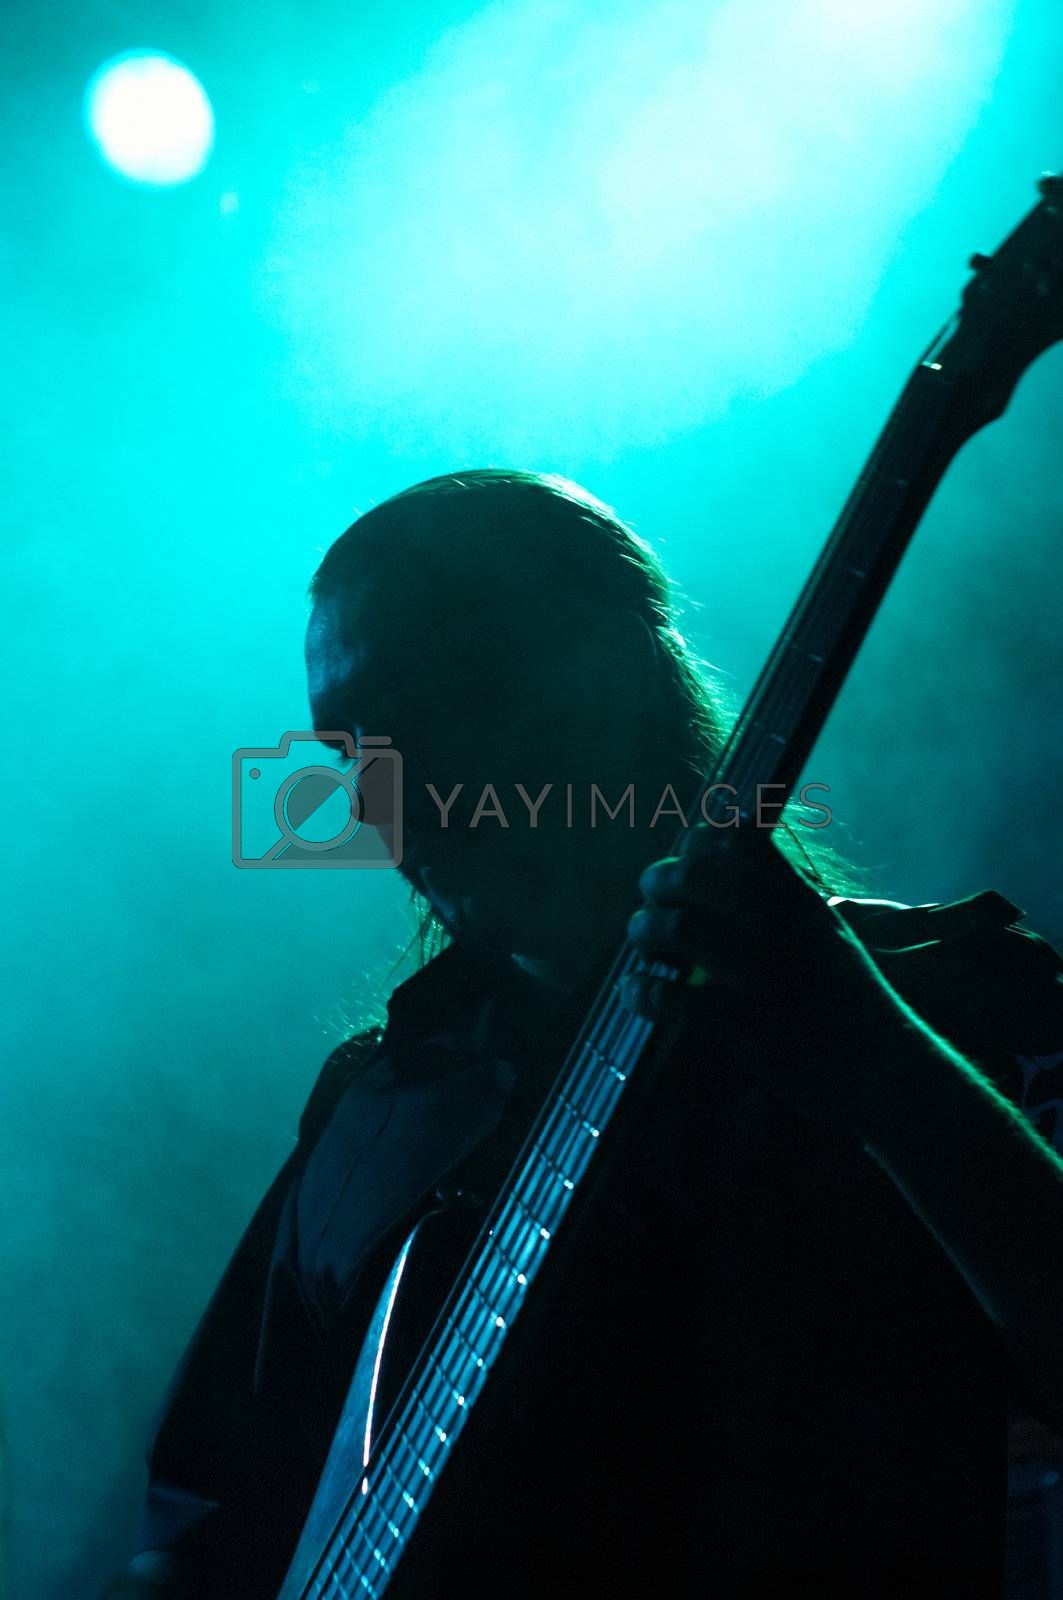 Bass-guitarist on live convert, at bluelight with smoke